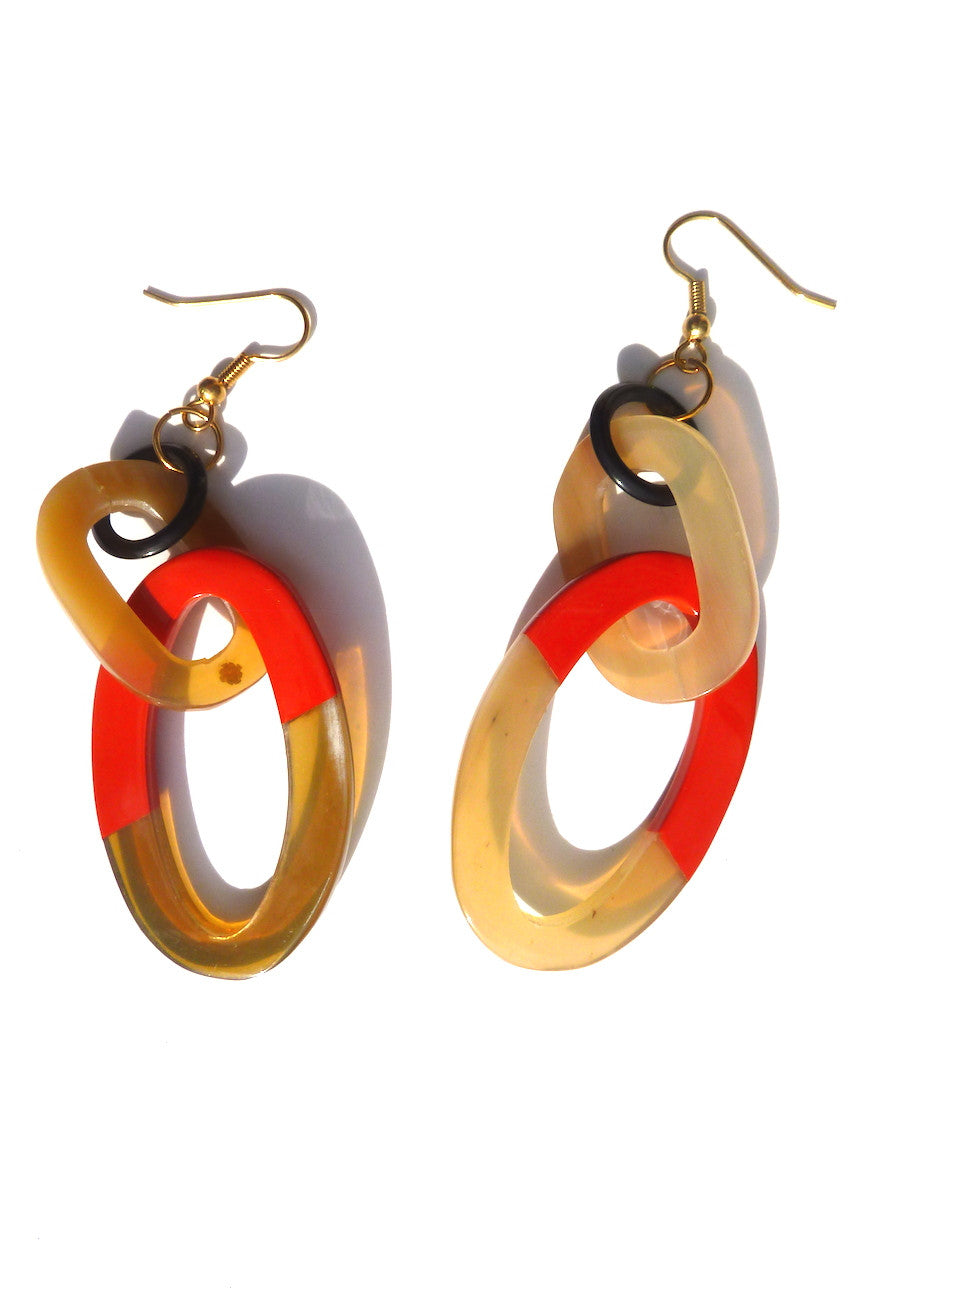 HORN EARRINGS DOUBLE OVAL WITH LACQUER